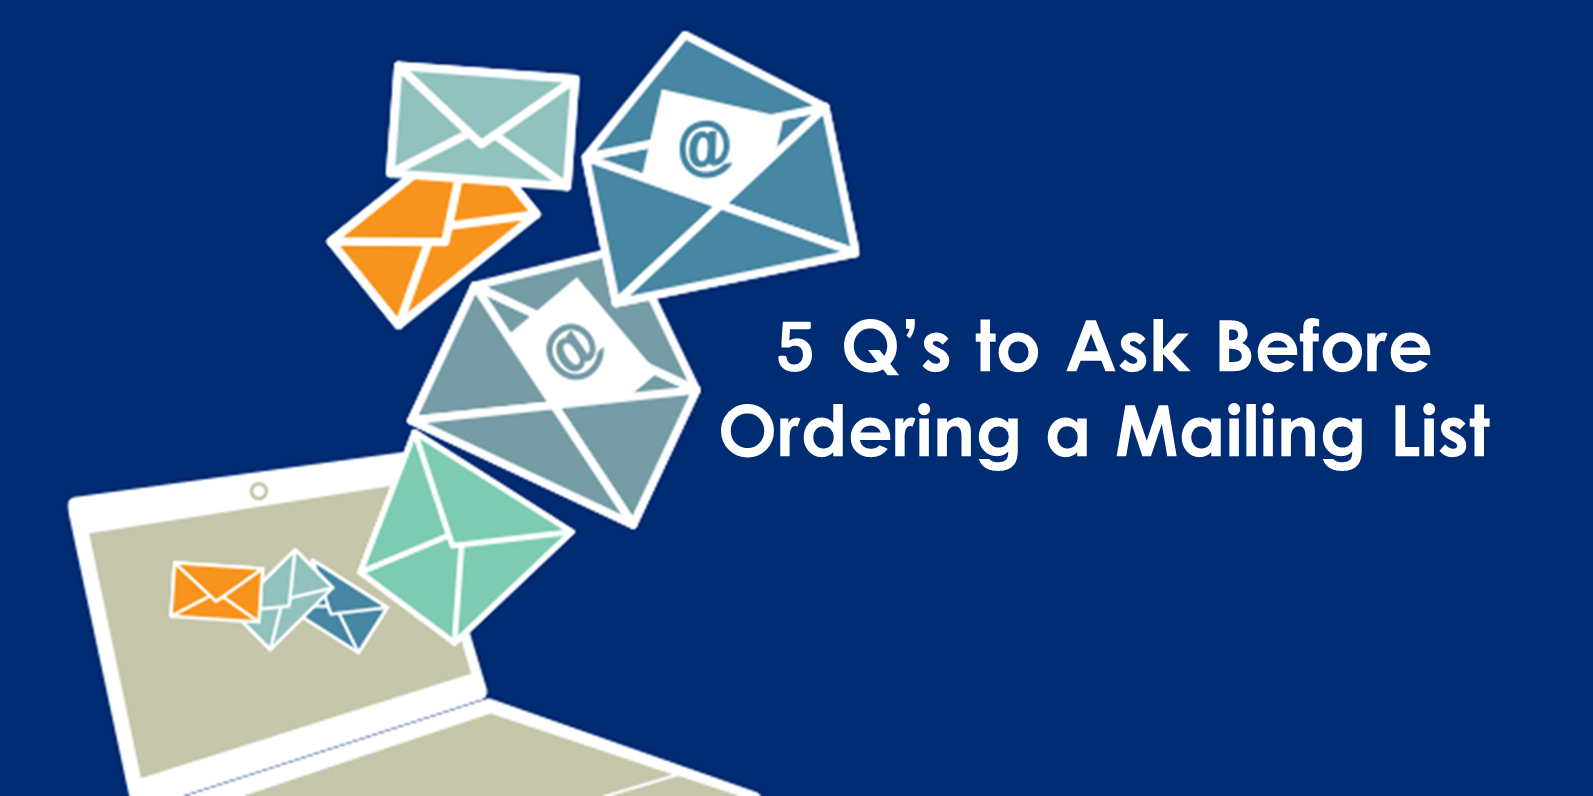 5-qs-mailing-lists-blog